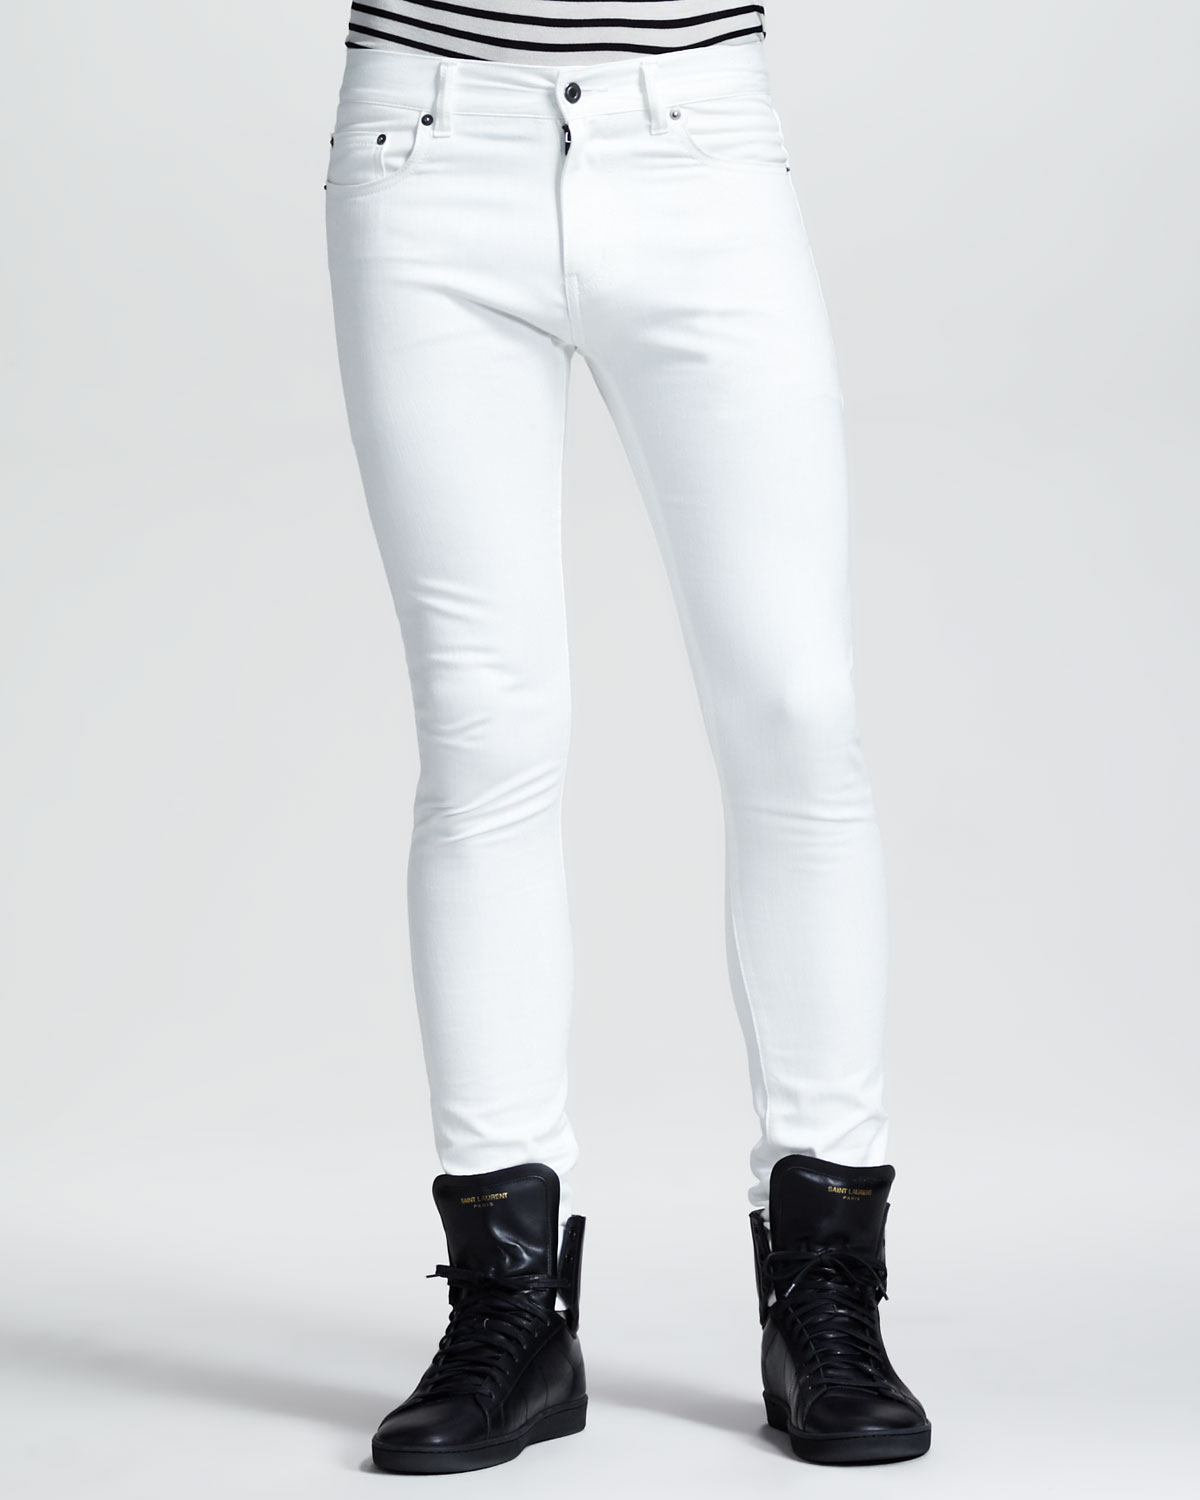 American Eagle White Jeans Men